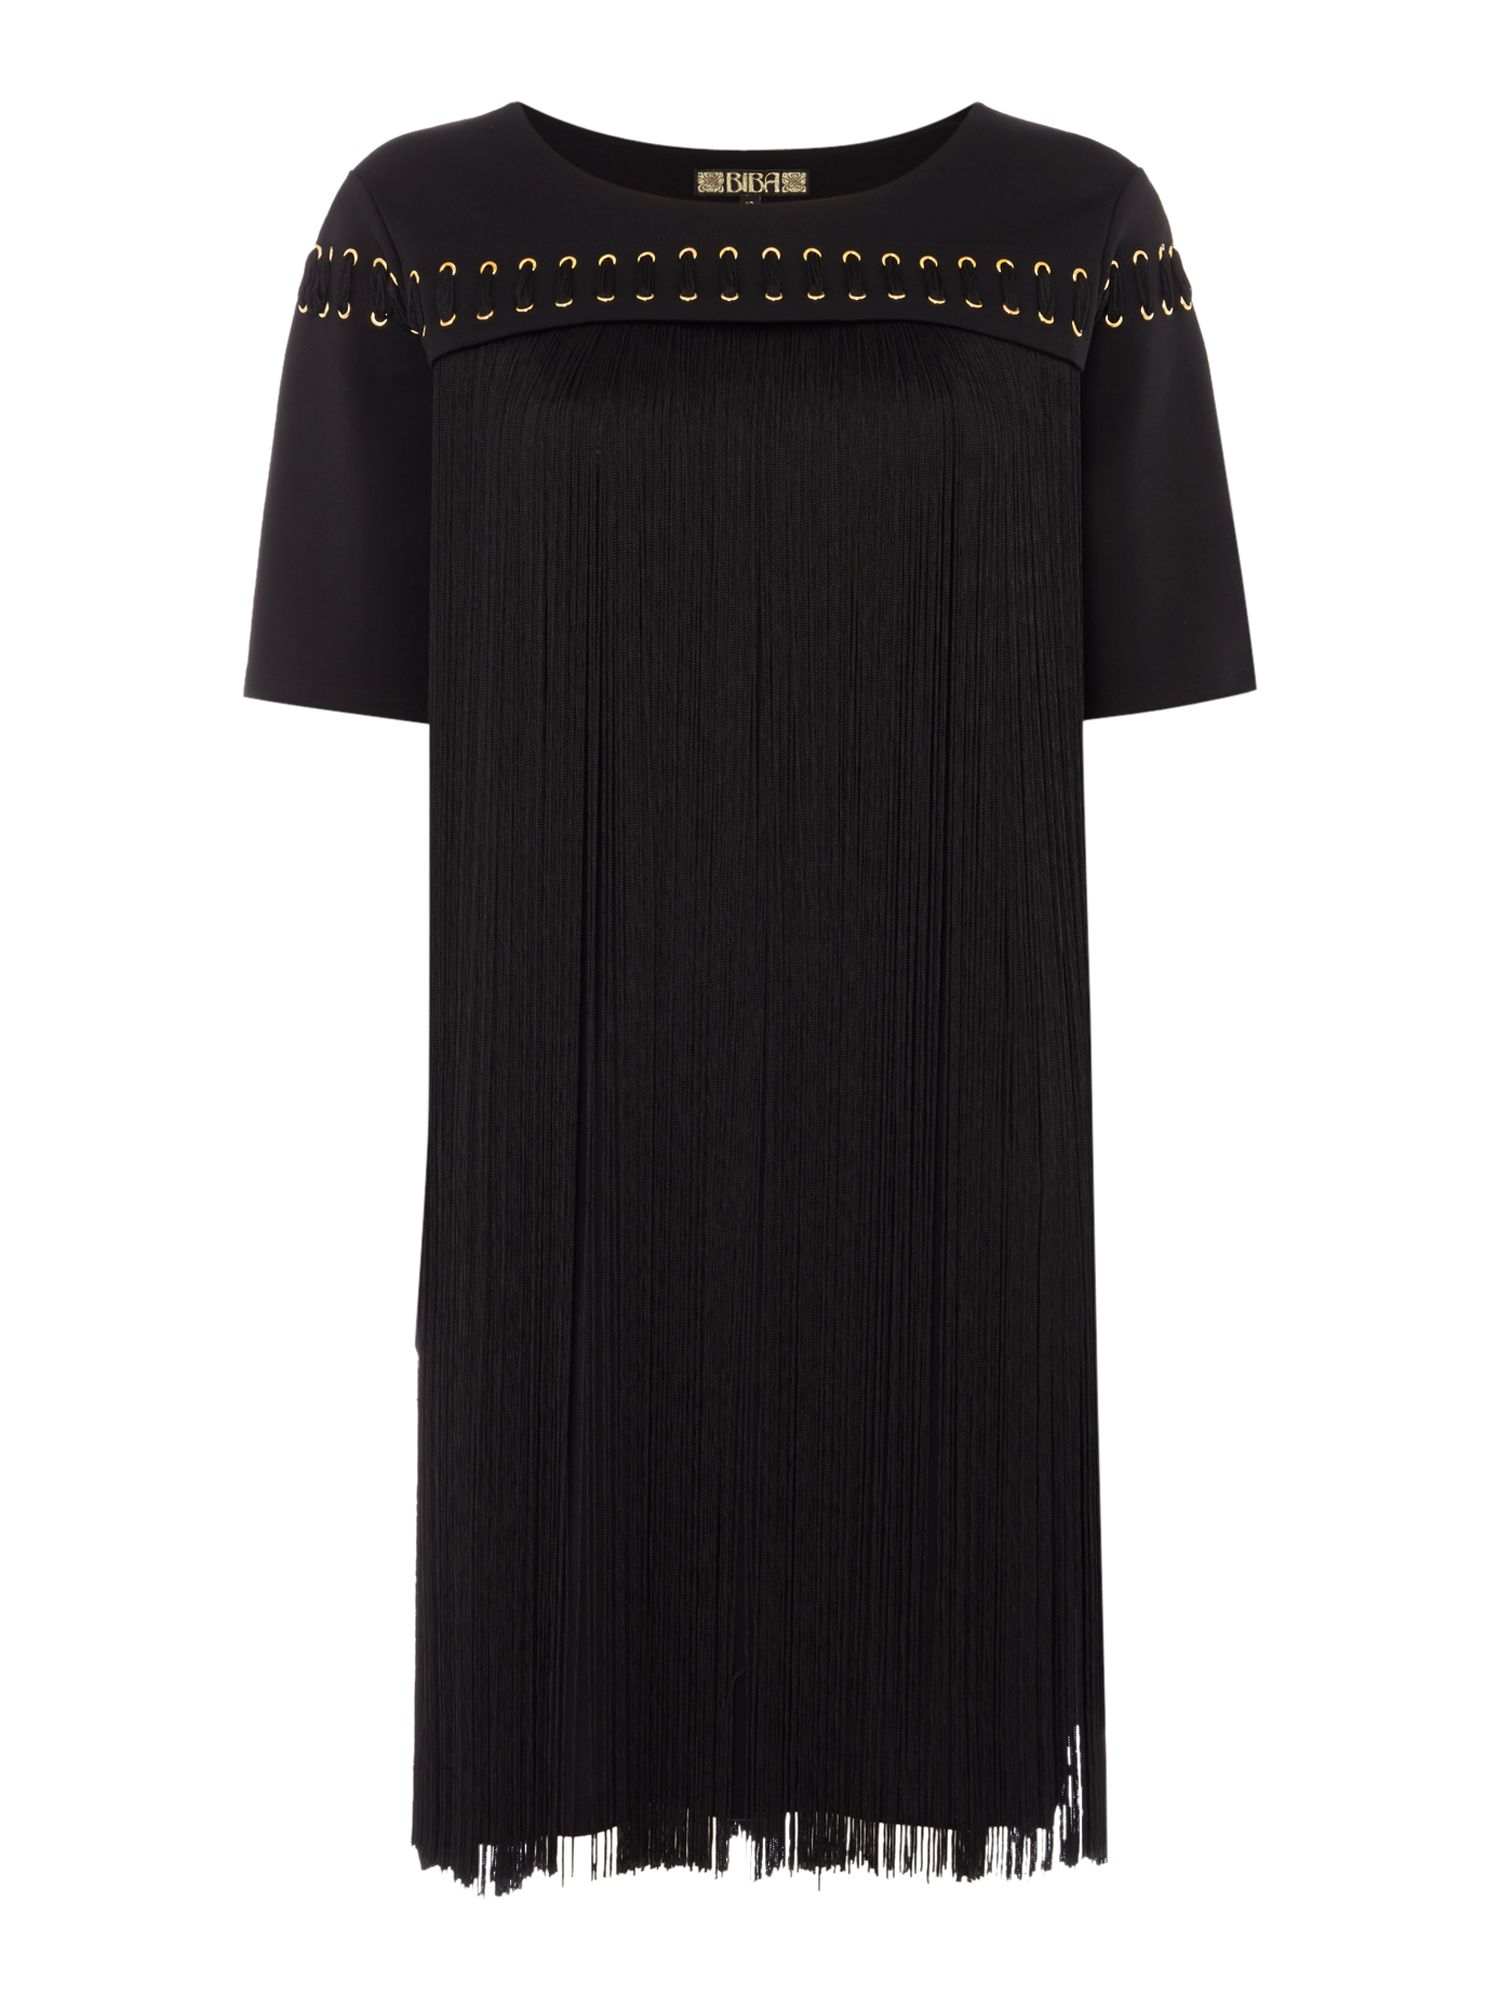 Biba Fringe tassel eyelet dress, Black